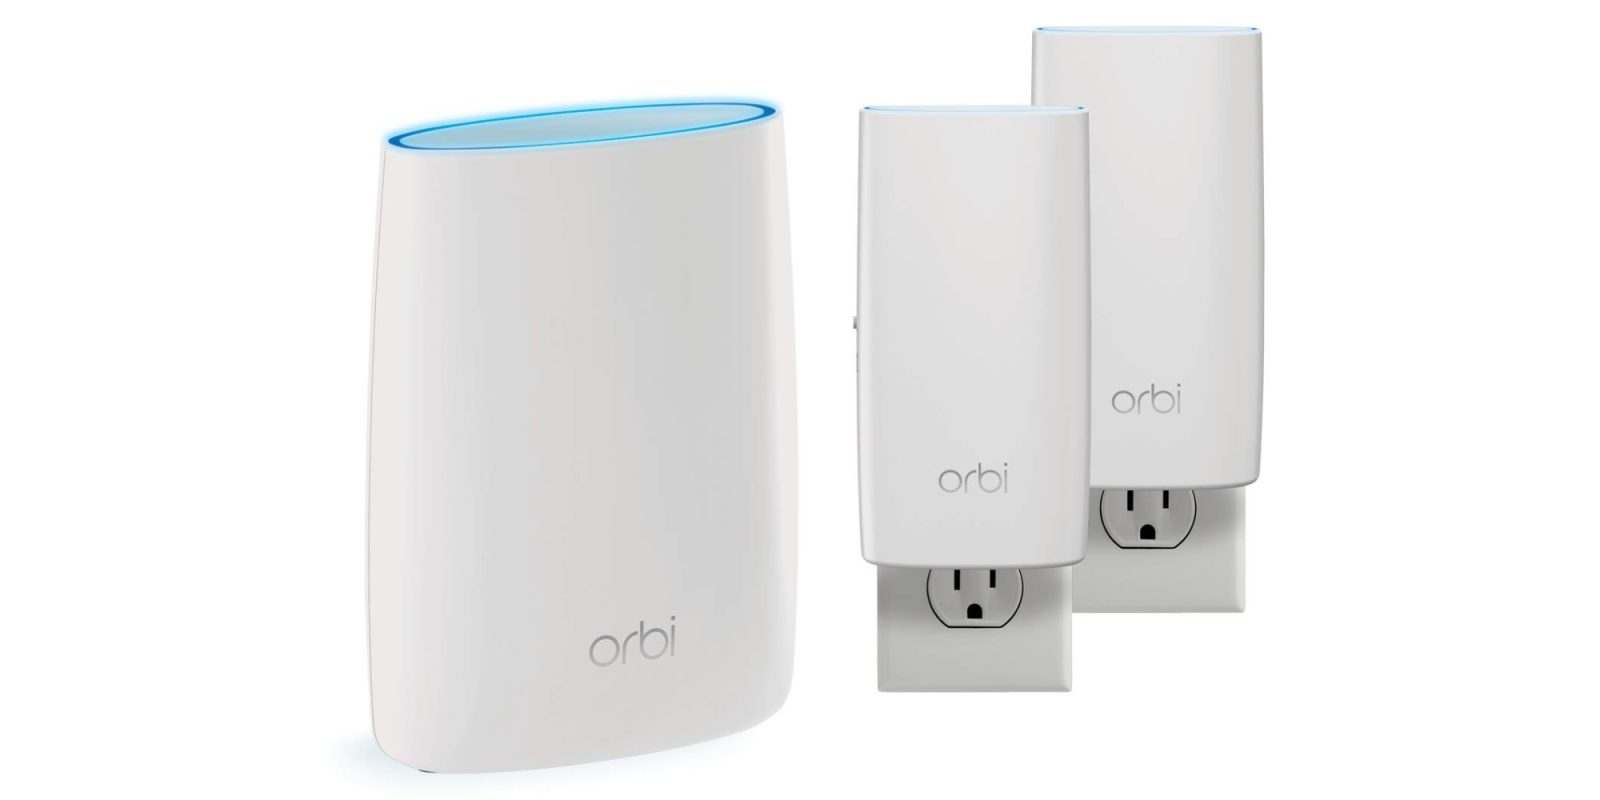 NETGEAR's Orbi 802.11ac Mesh Wi-Fi Router is $290 (Save $60), more from $250